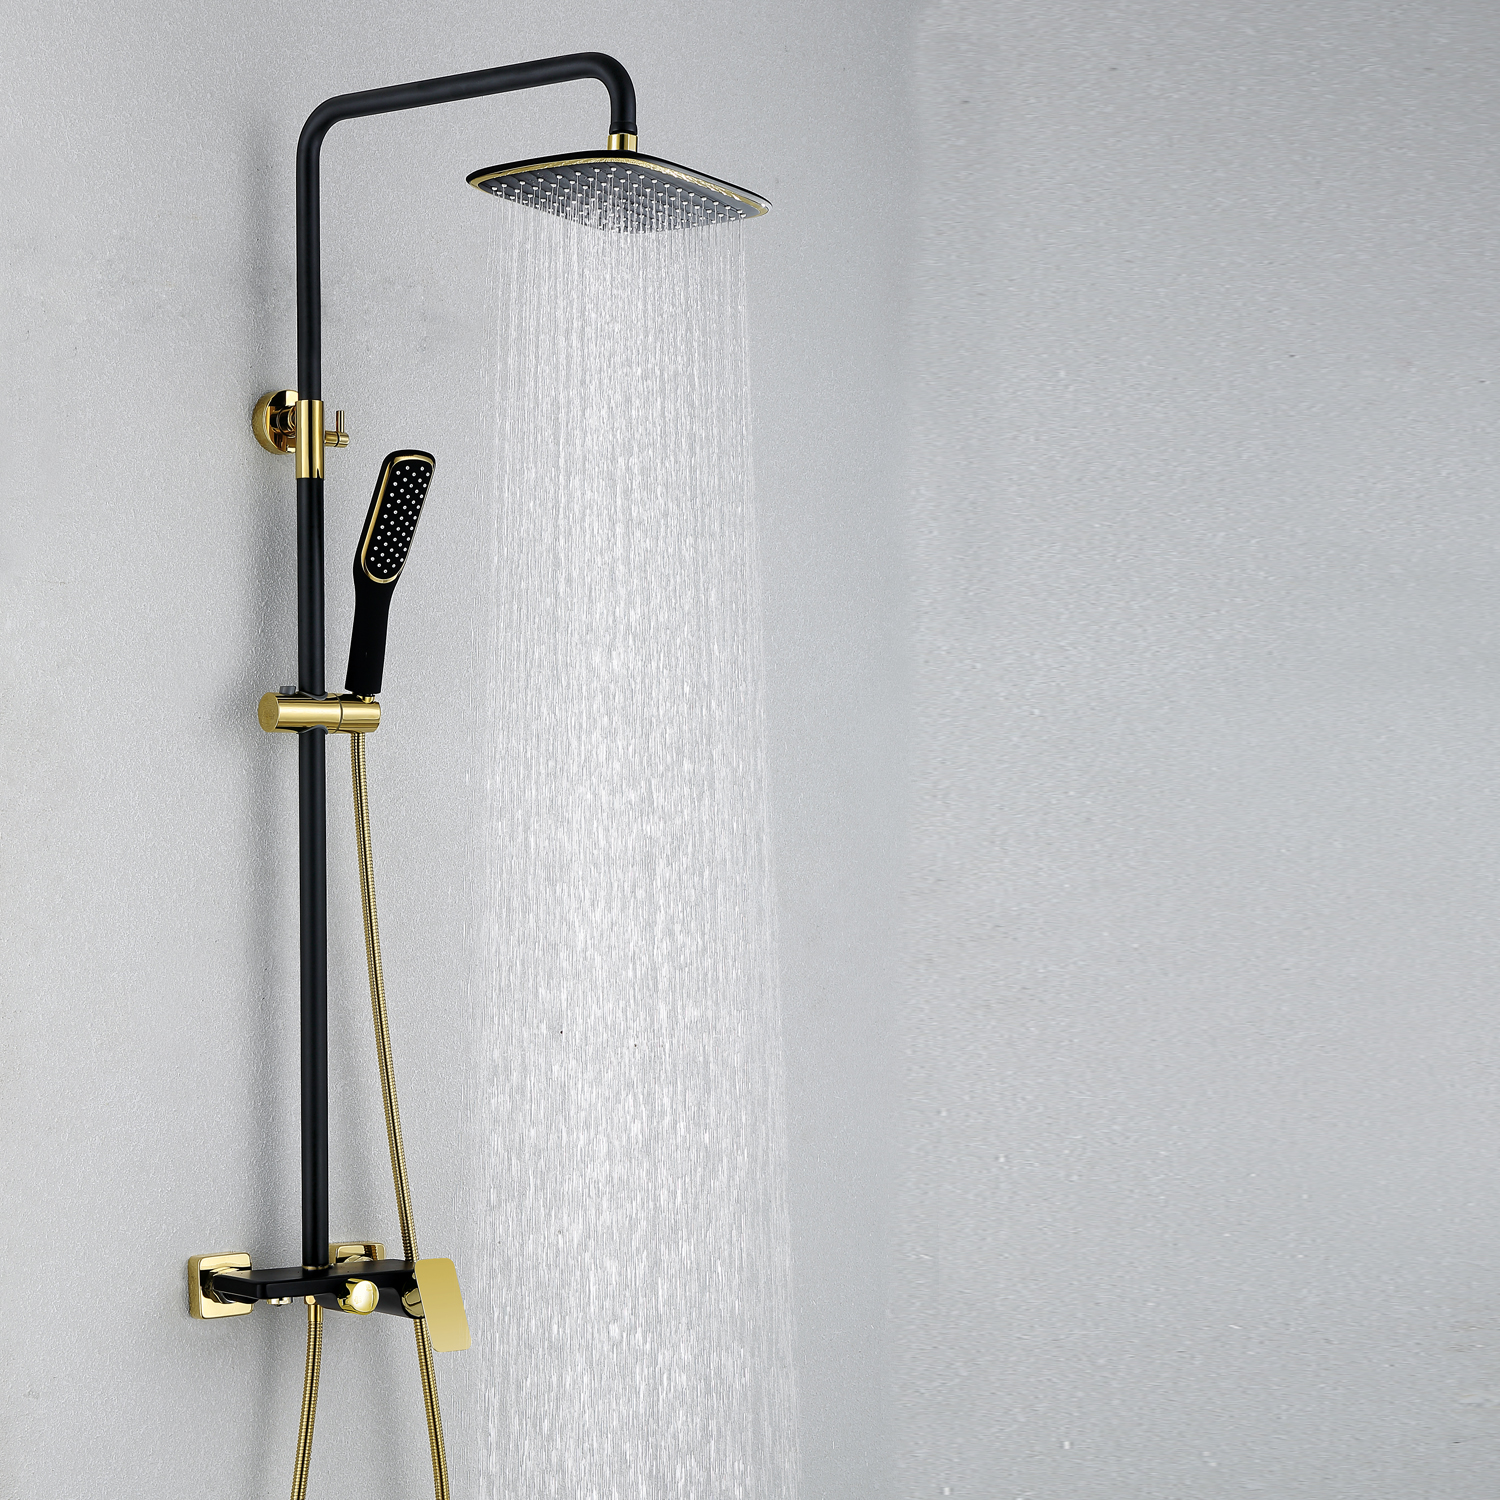 European Modern Copper Shower Sets Hot And Cold Shower